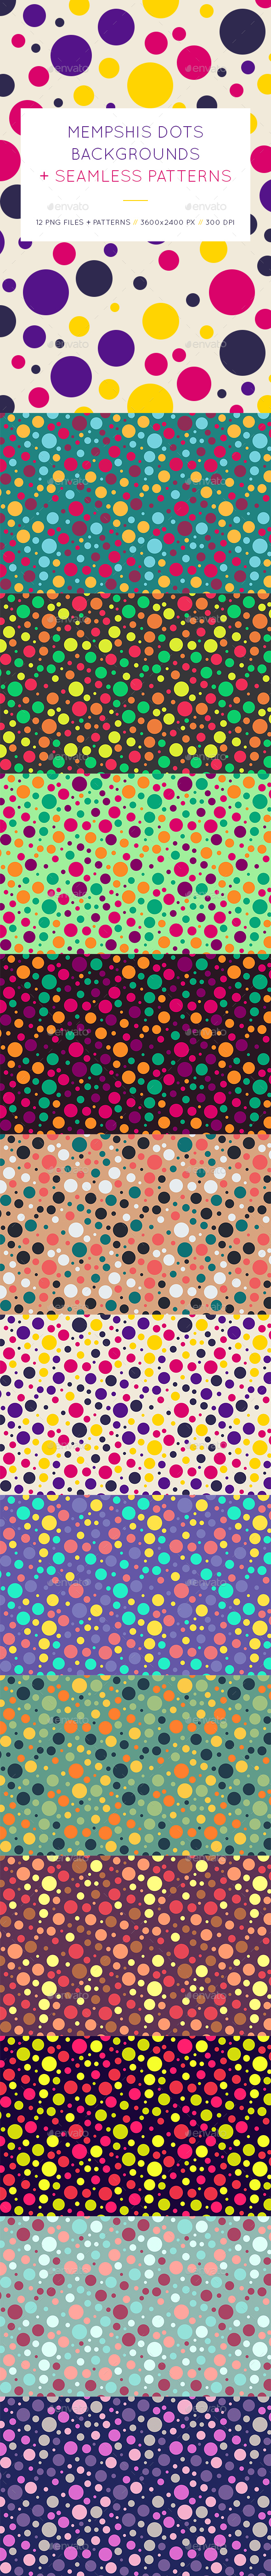 Memphis Dots Backgrounds - Patterns Backgrounds